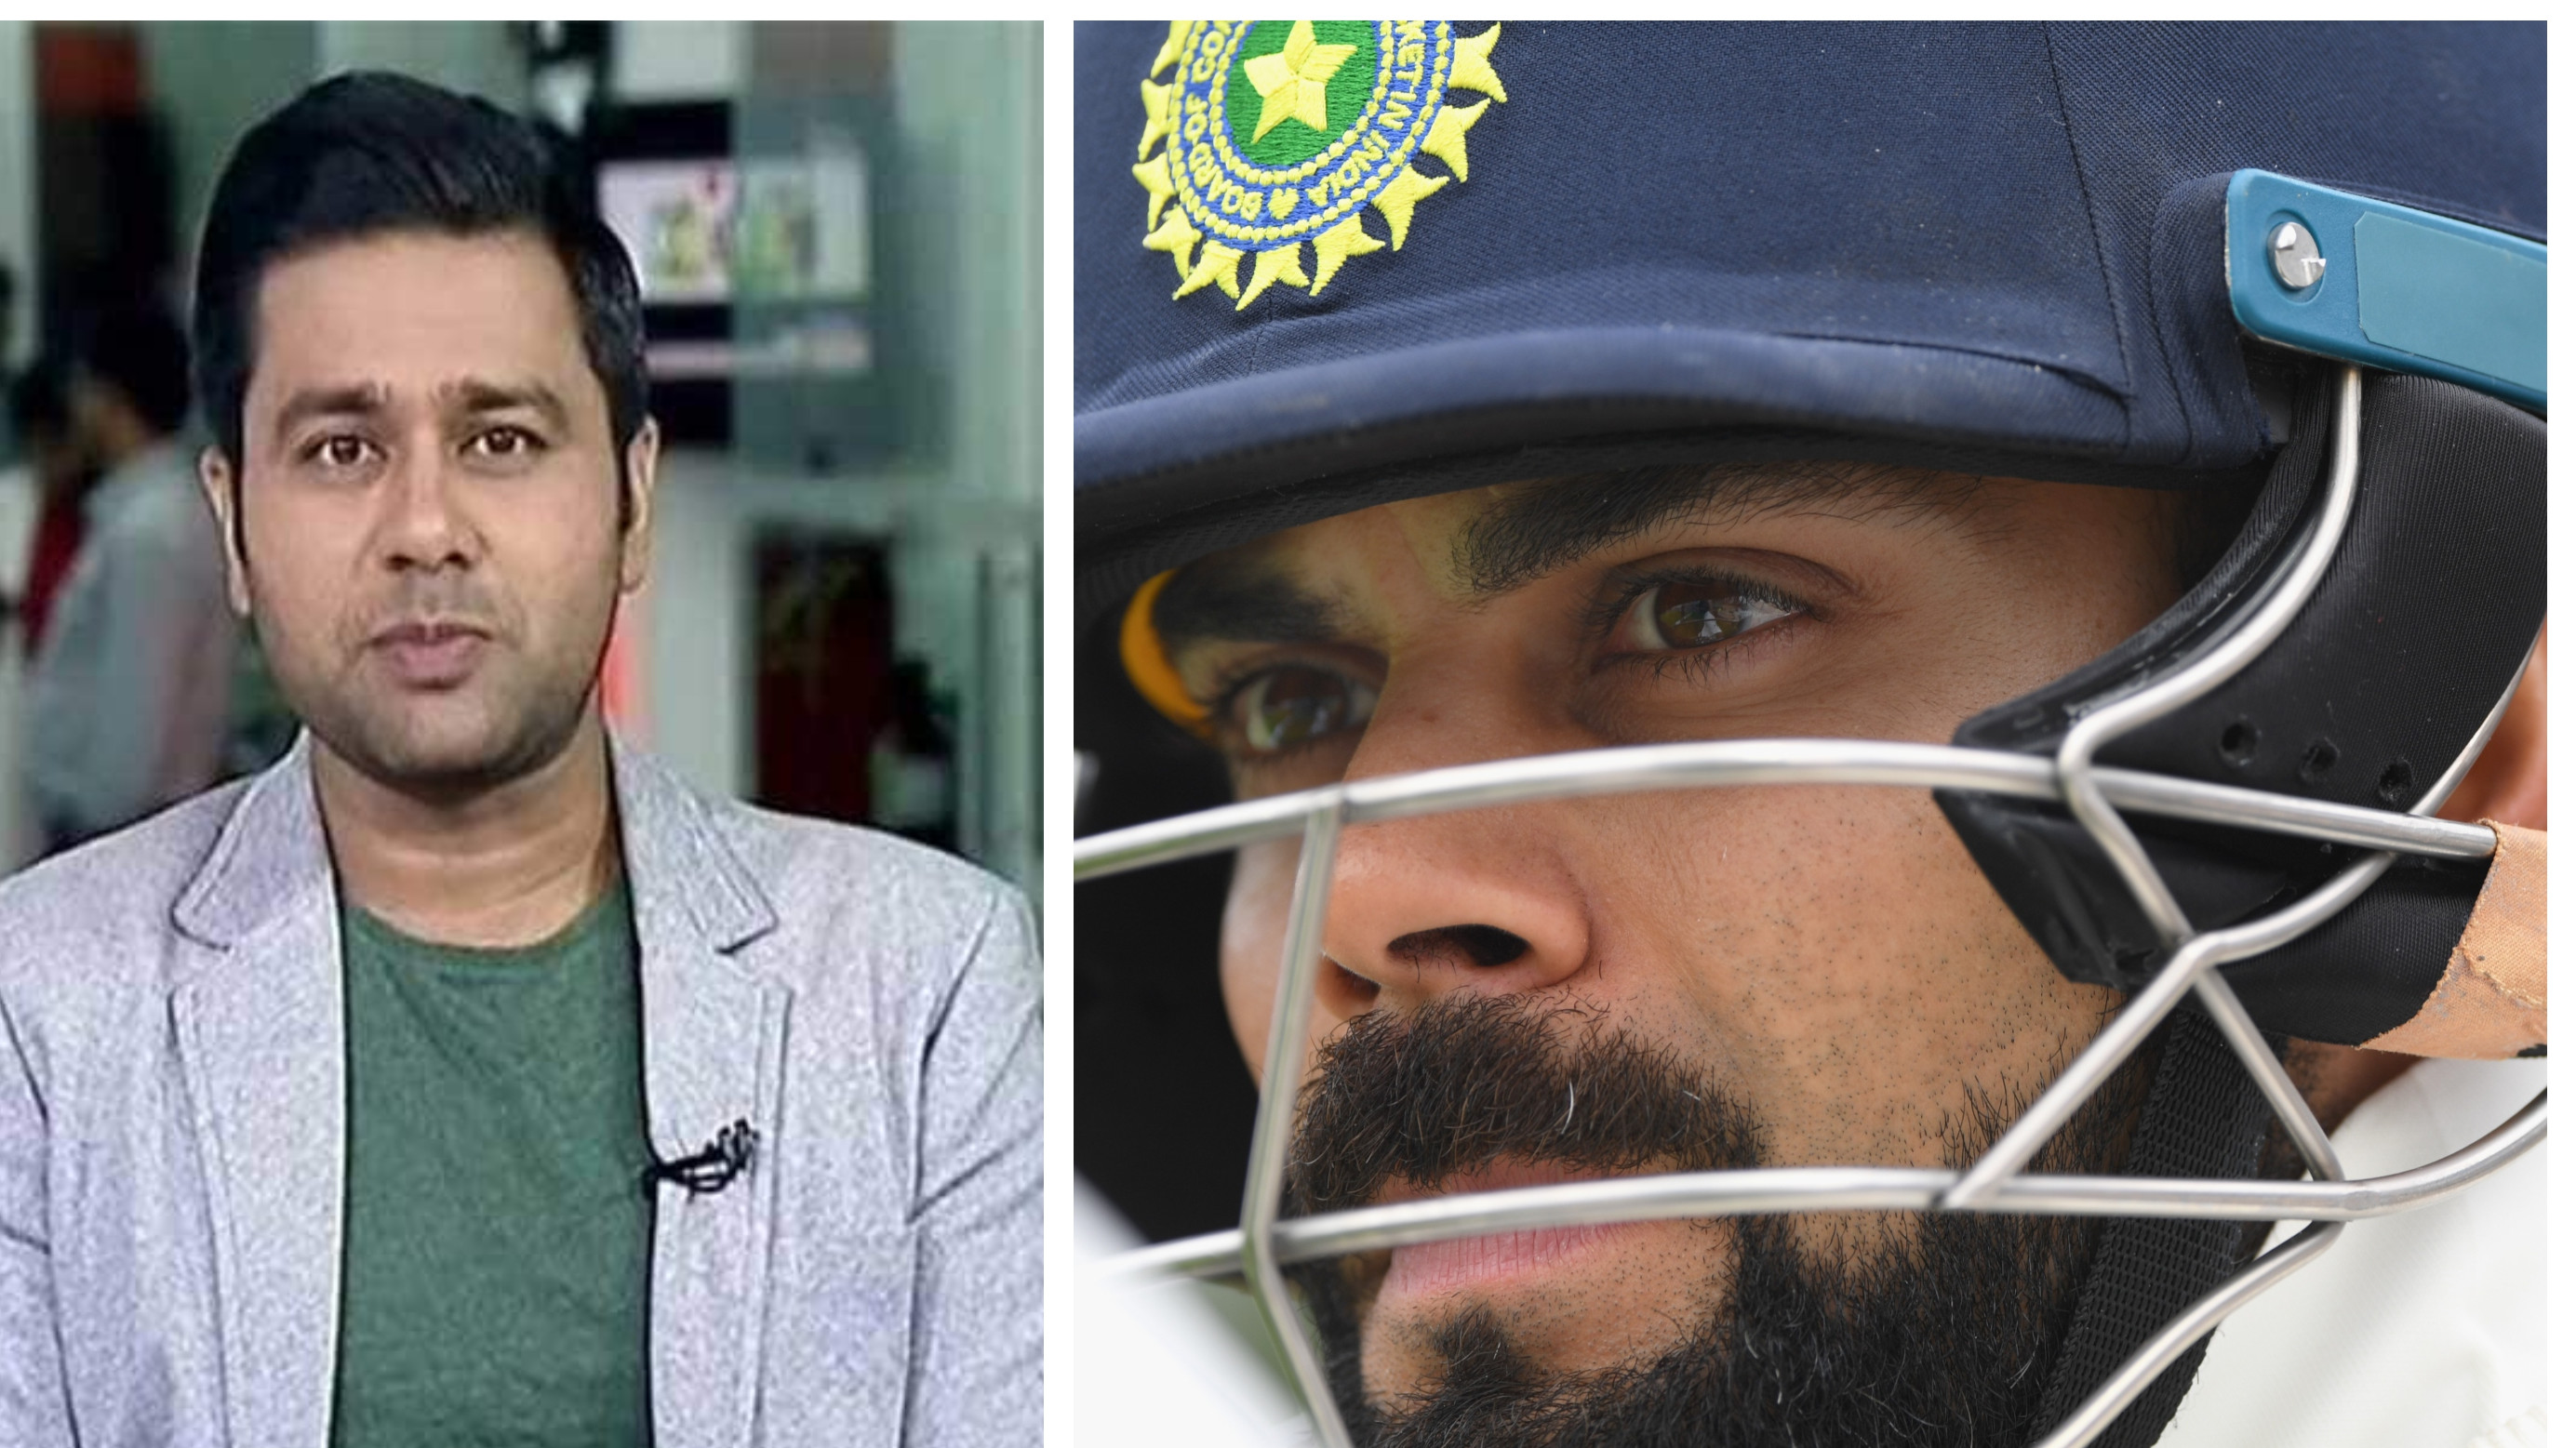 ENG vs IND 2018: Virat Kohli is the only Indian batsman to have progressed the rest have regressed, says Aakash Chopra